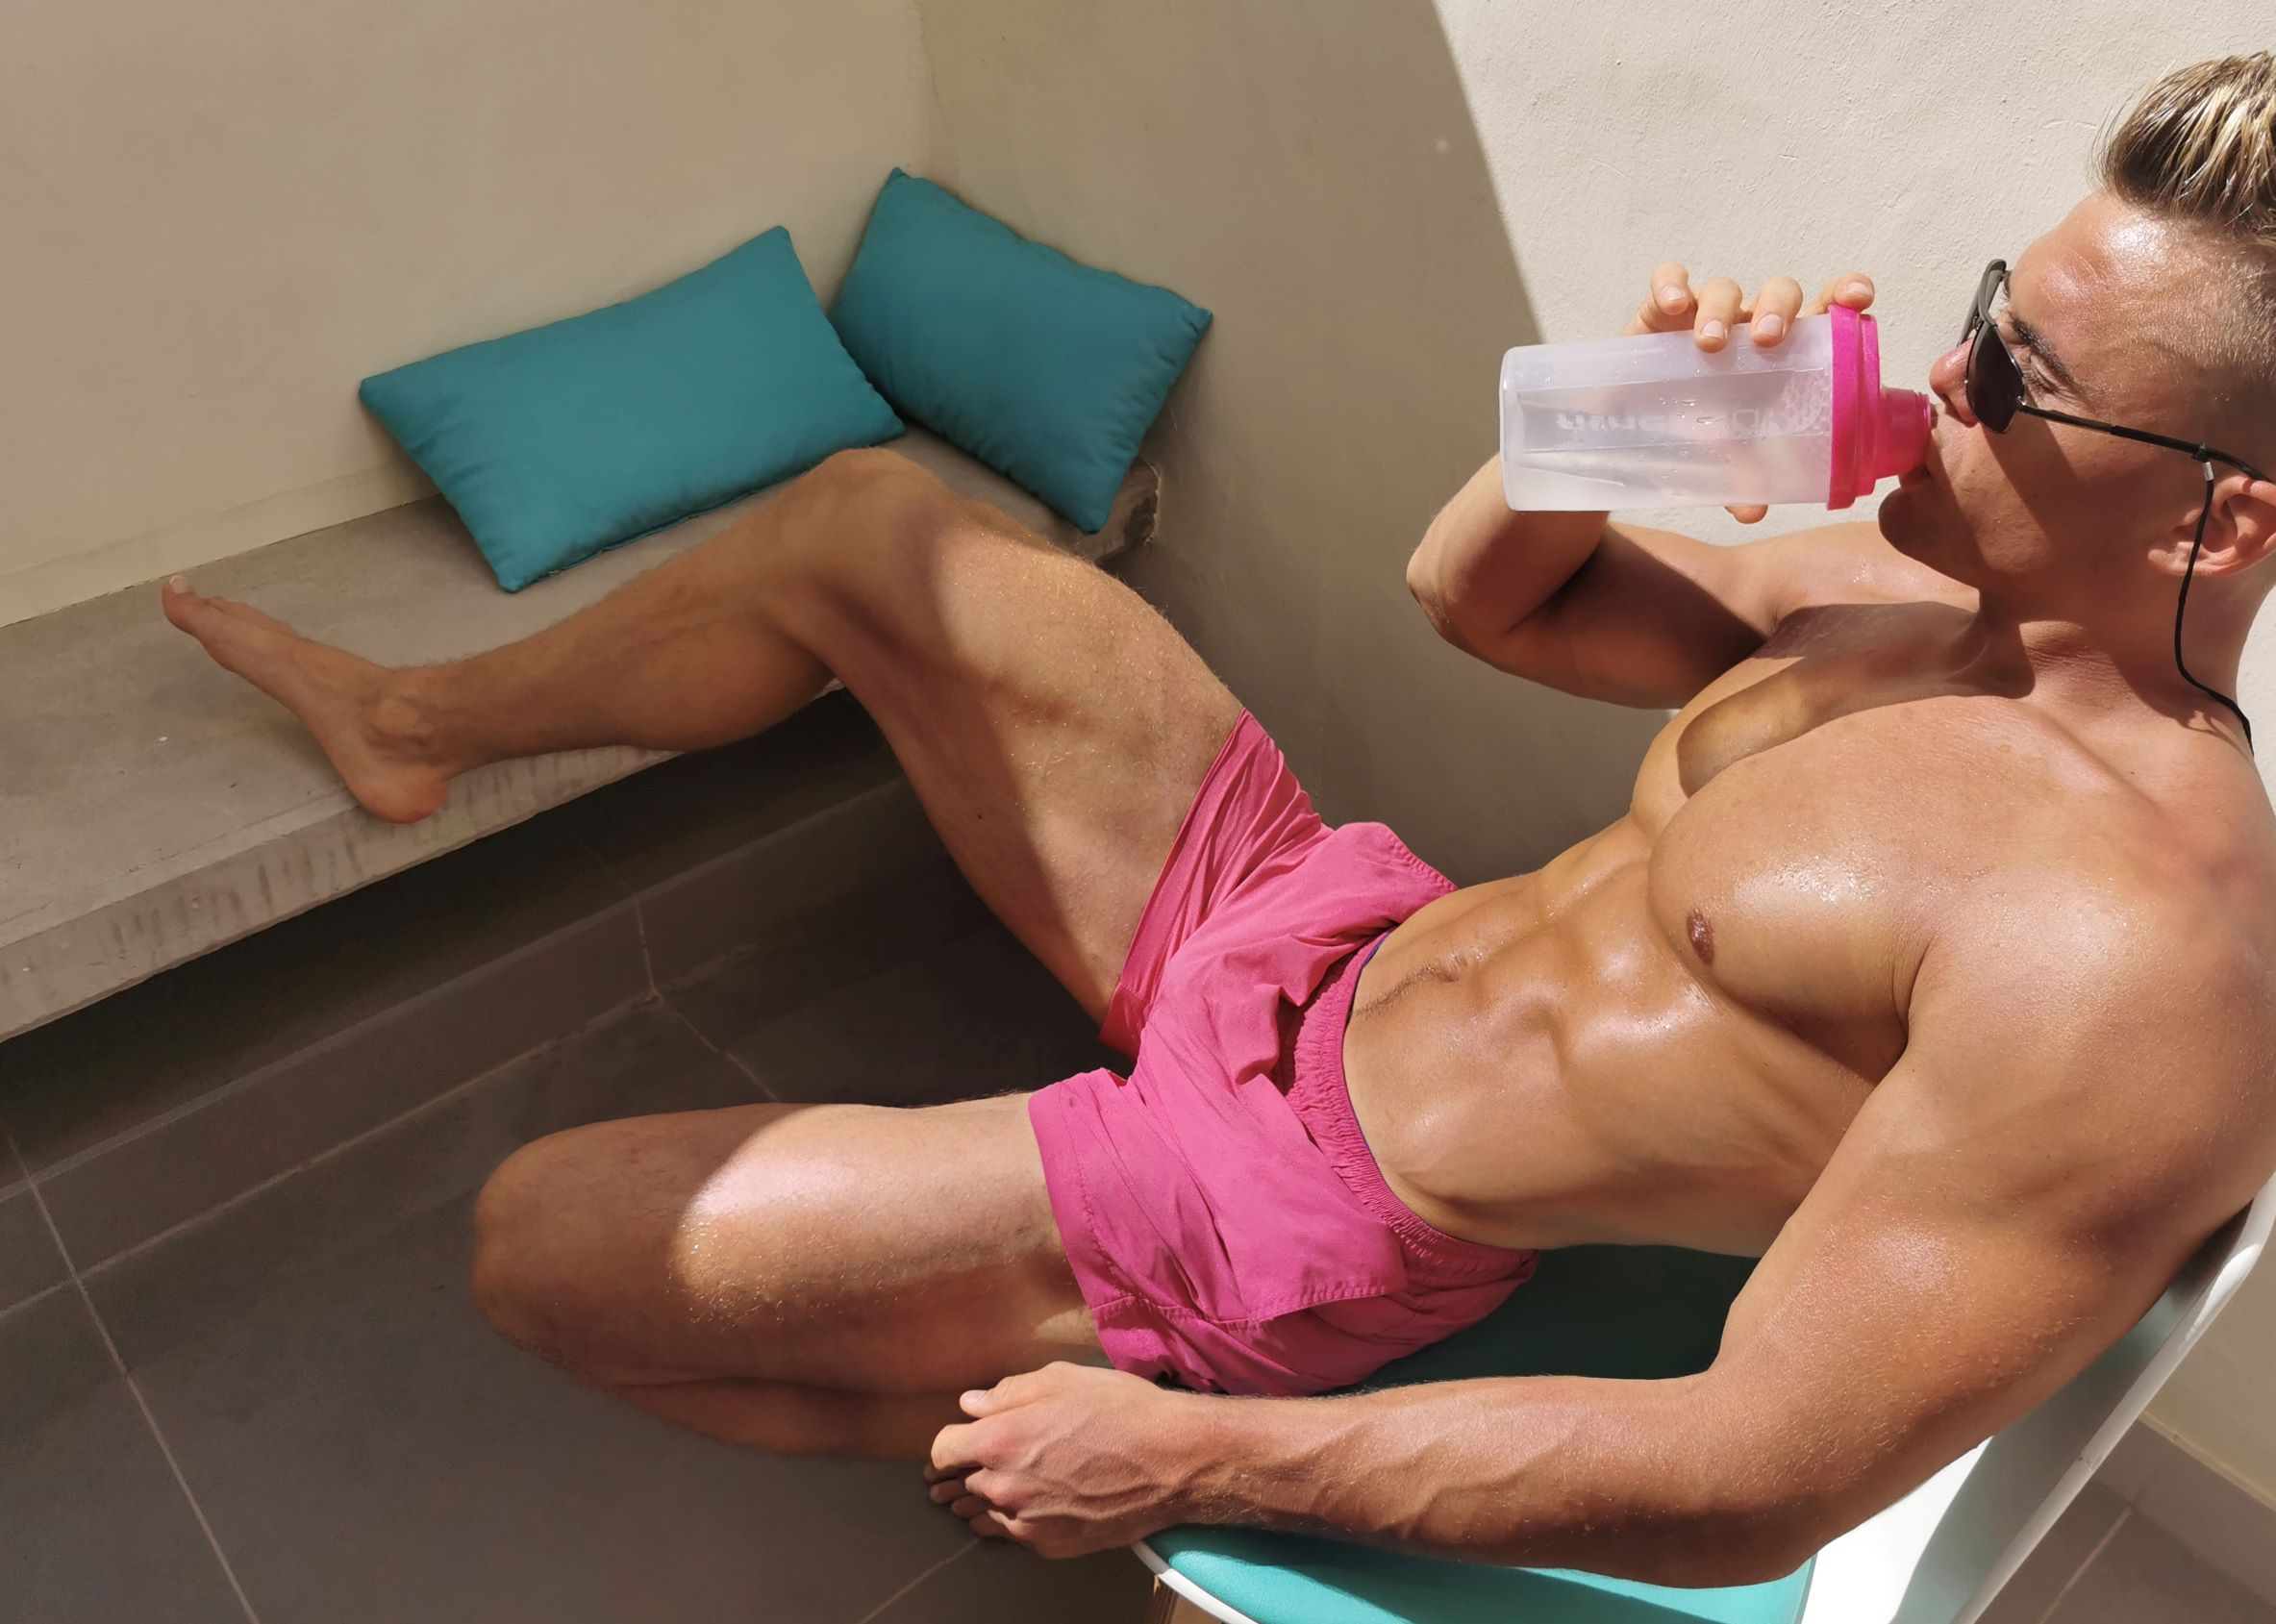 v sex lines - How to look good naked_the importance of sex lines in abdominals